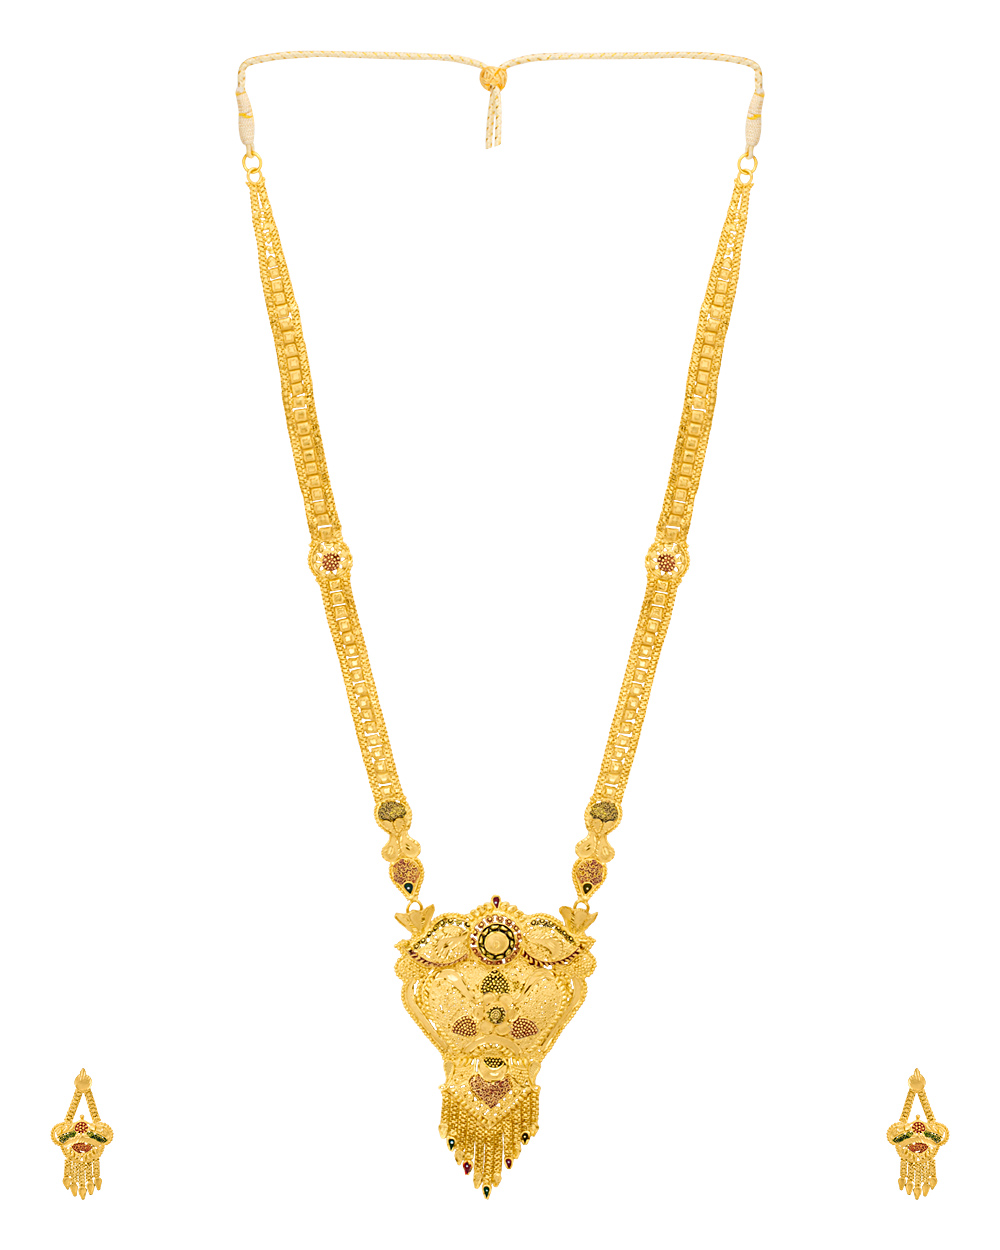 Buy Floral Gold Plated Rani Haar Necklace Set Online India | Voylla